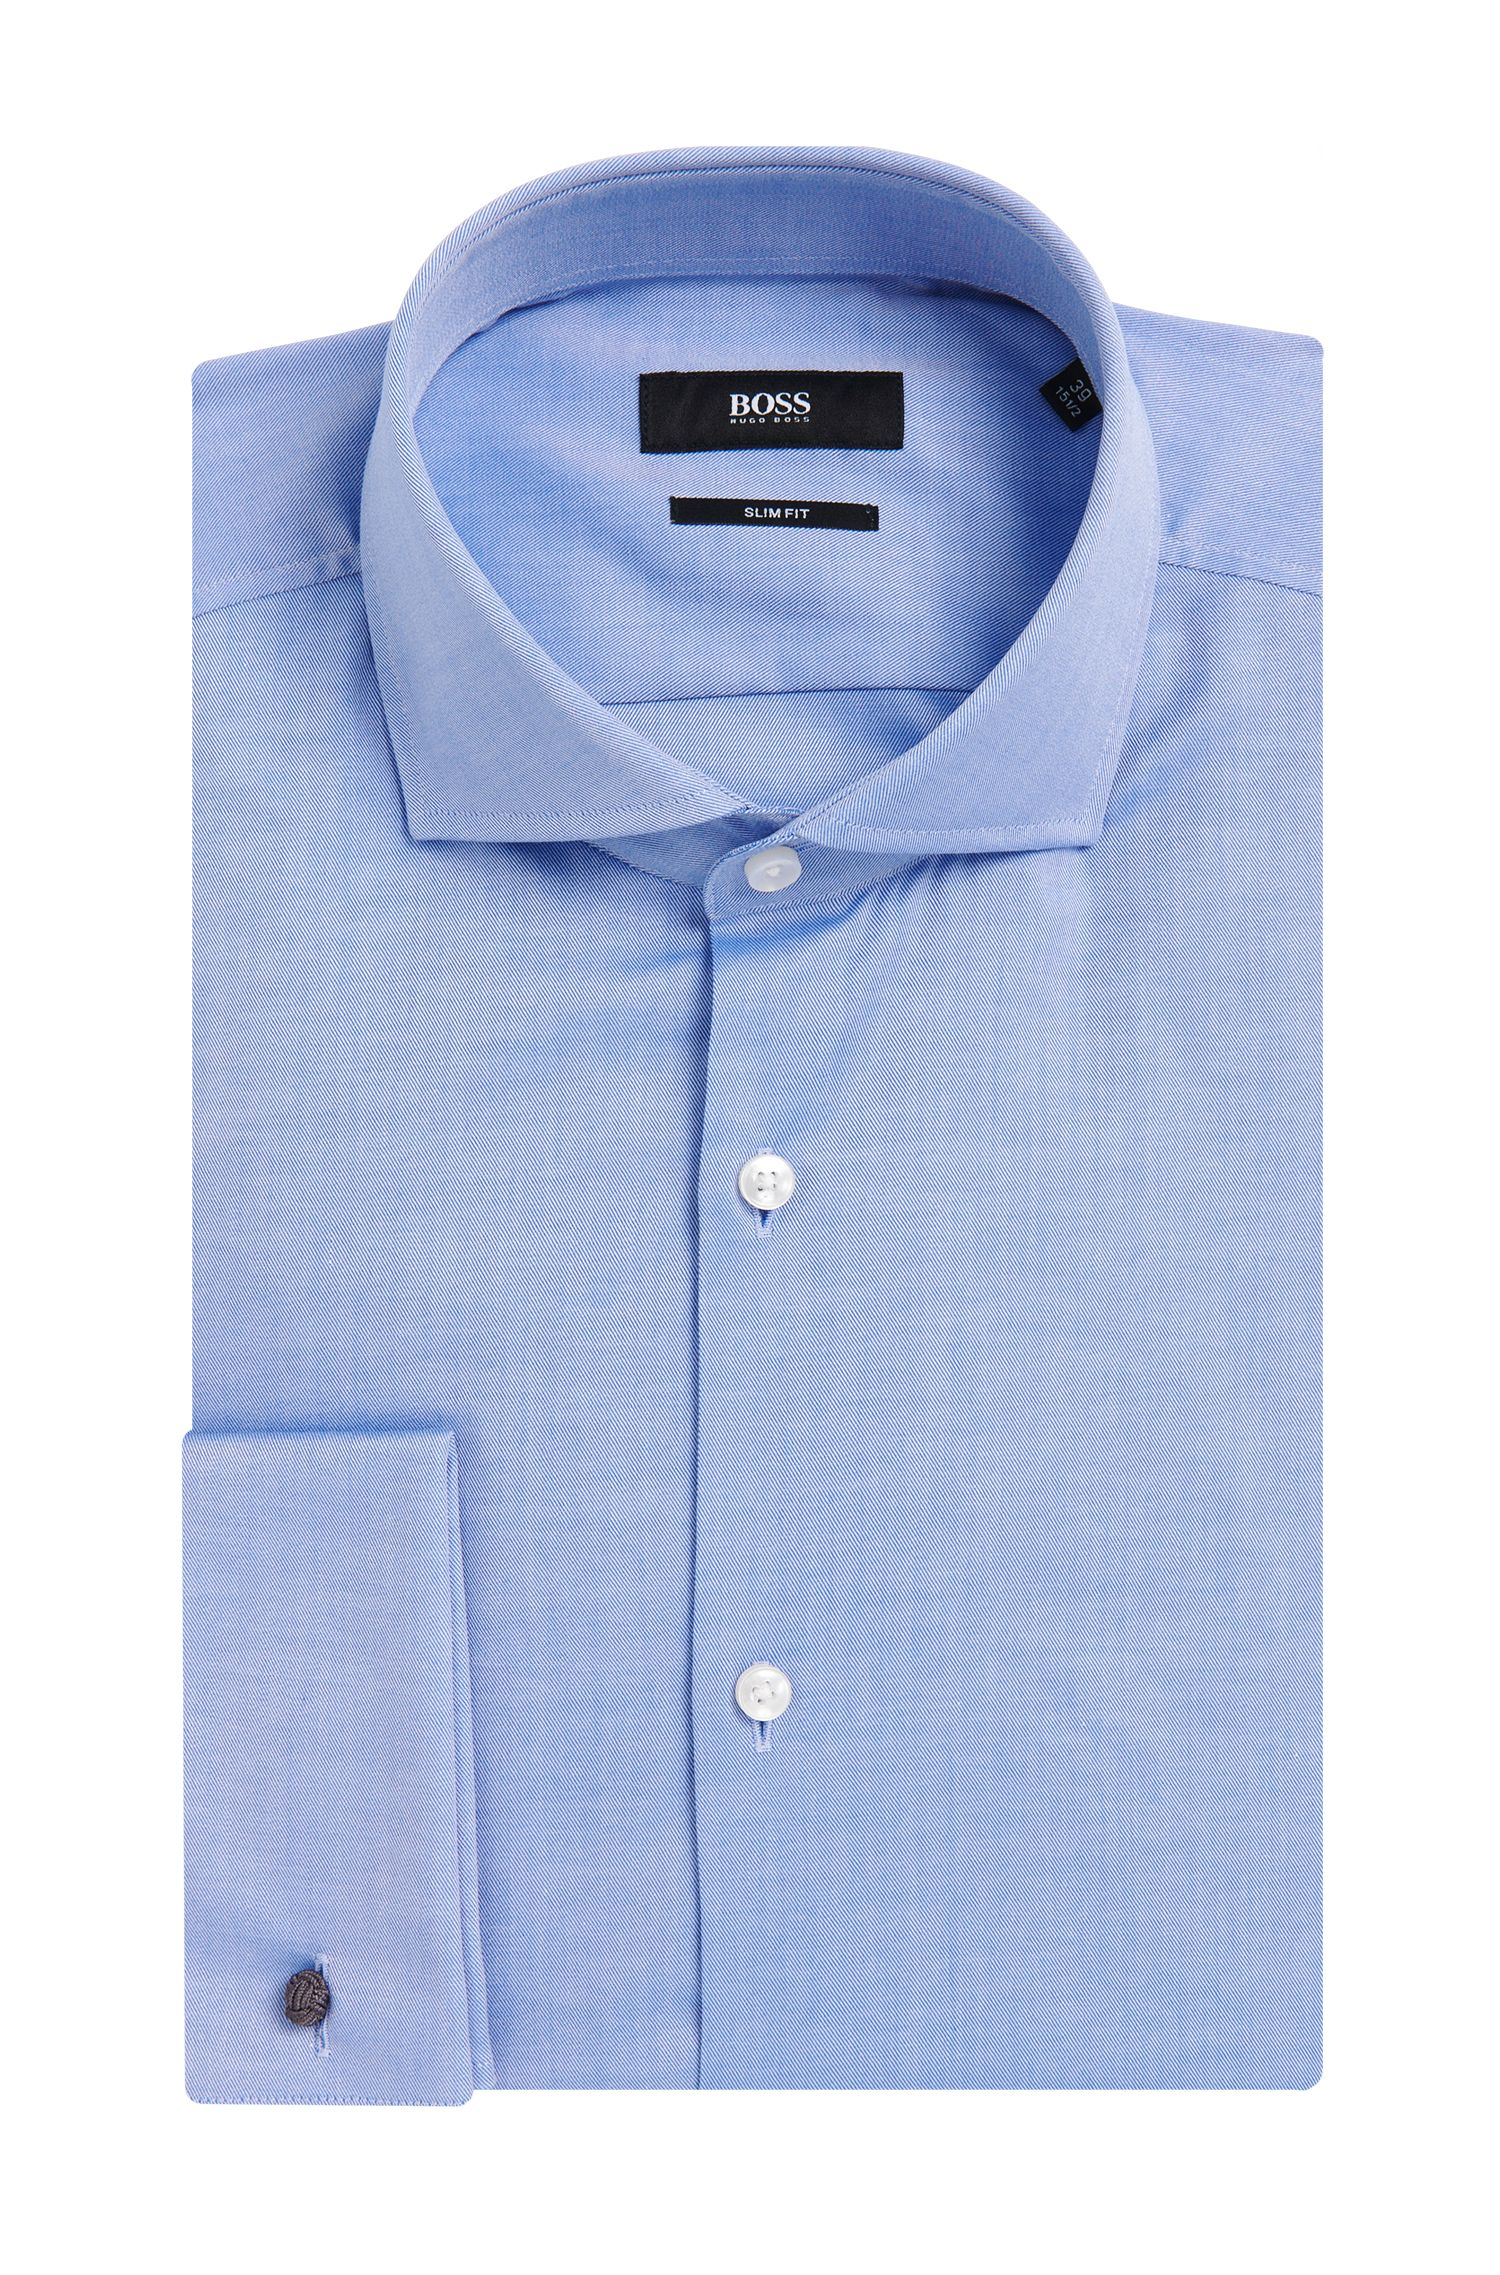 'Jaiden' | Slim Fit, Italian Cotton French Cuff Dress Shirt